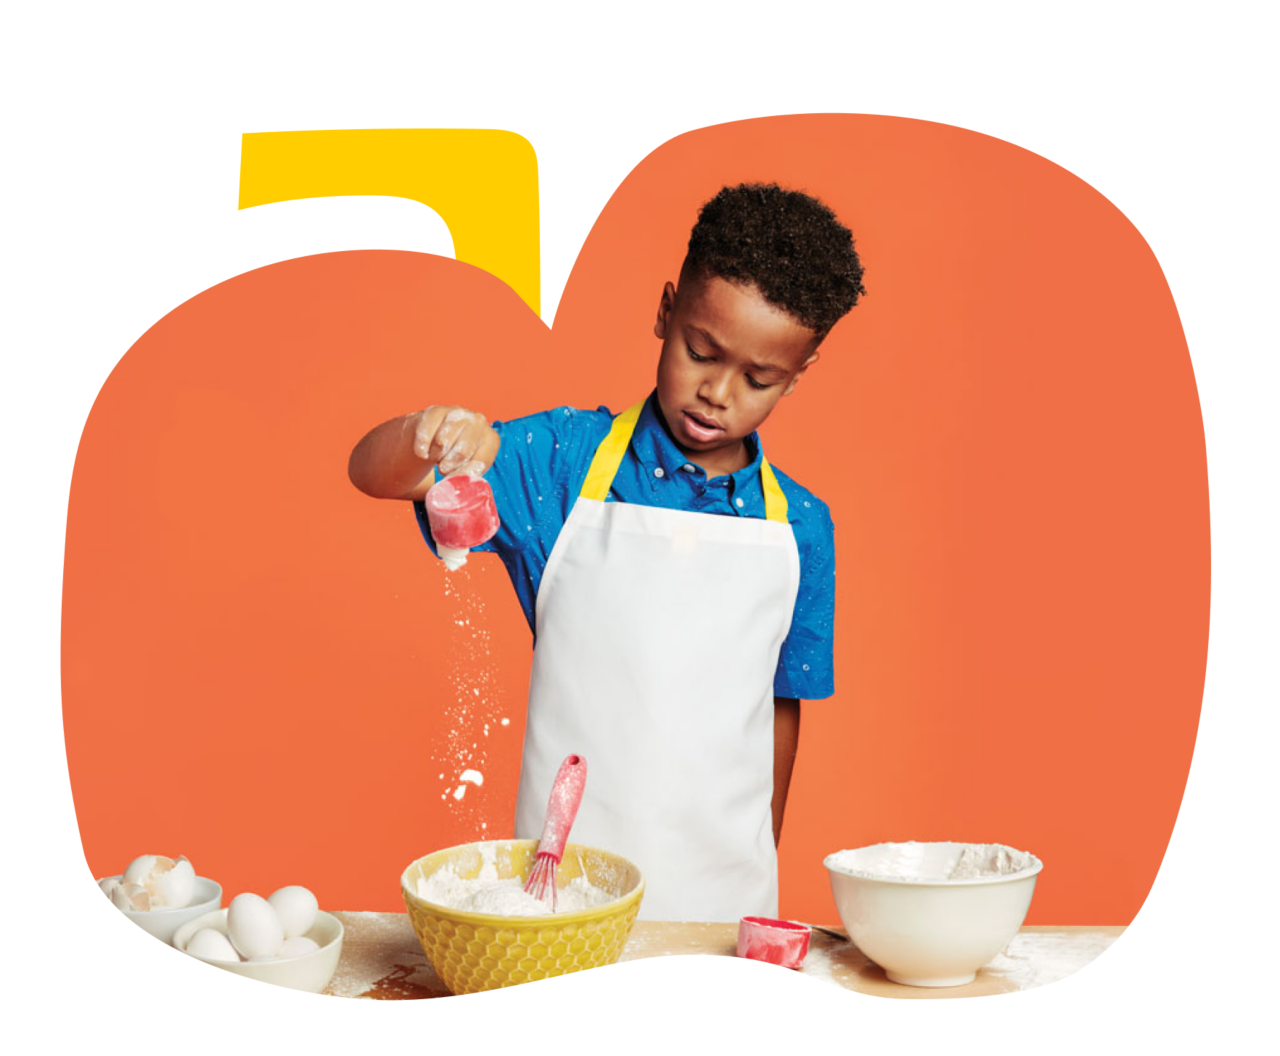 Young boy pouring a cup of flour into a mixing bowl.